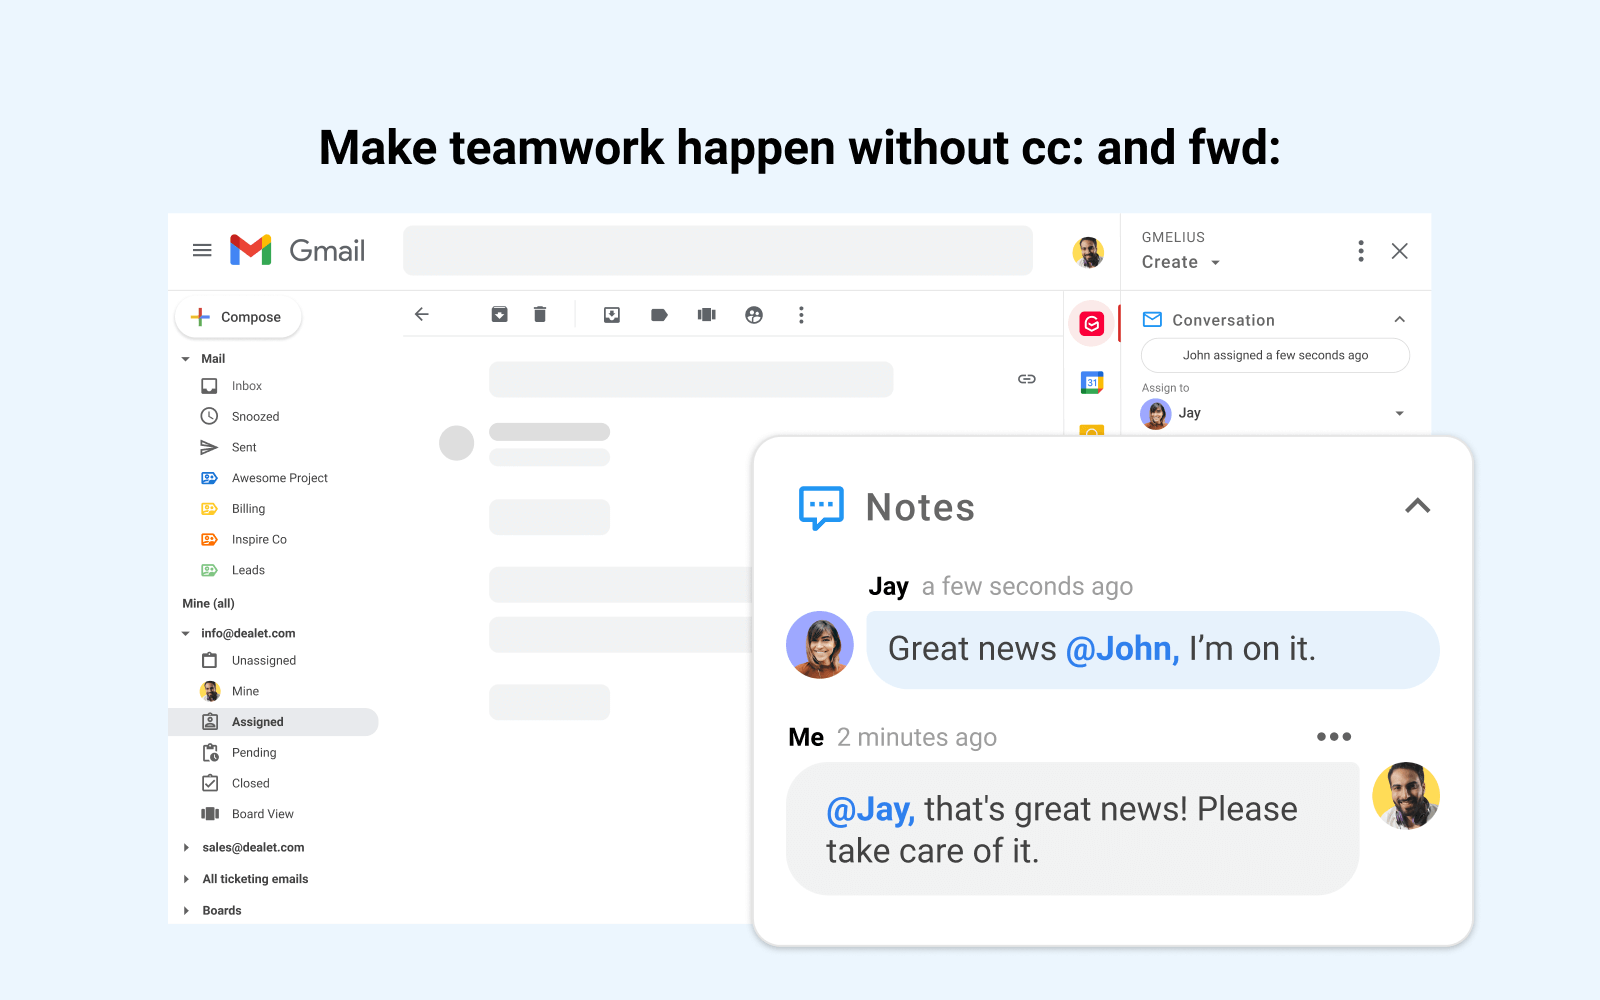 Make teamwork happen without cc: and fwd: